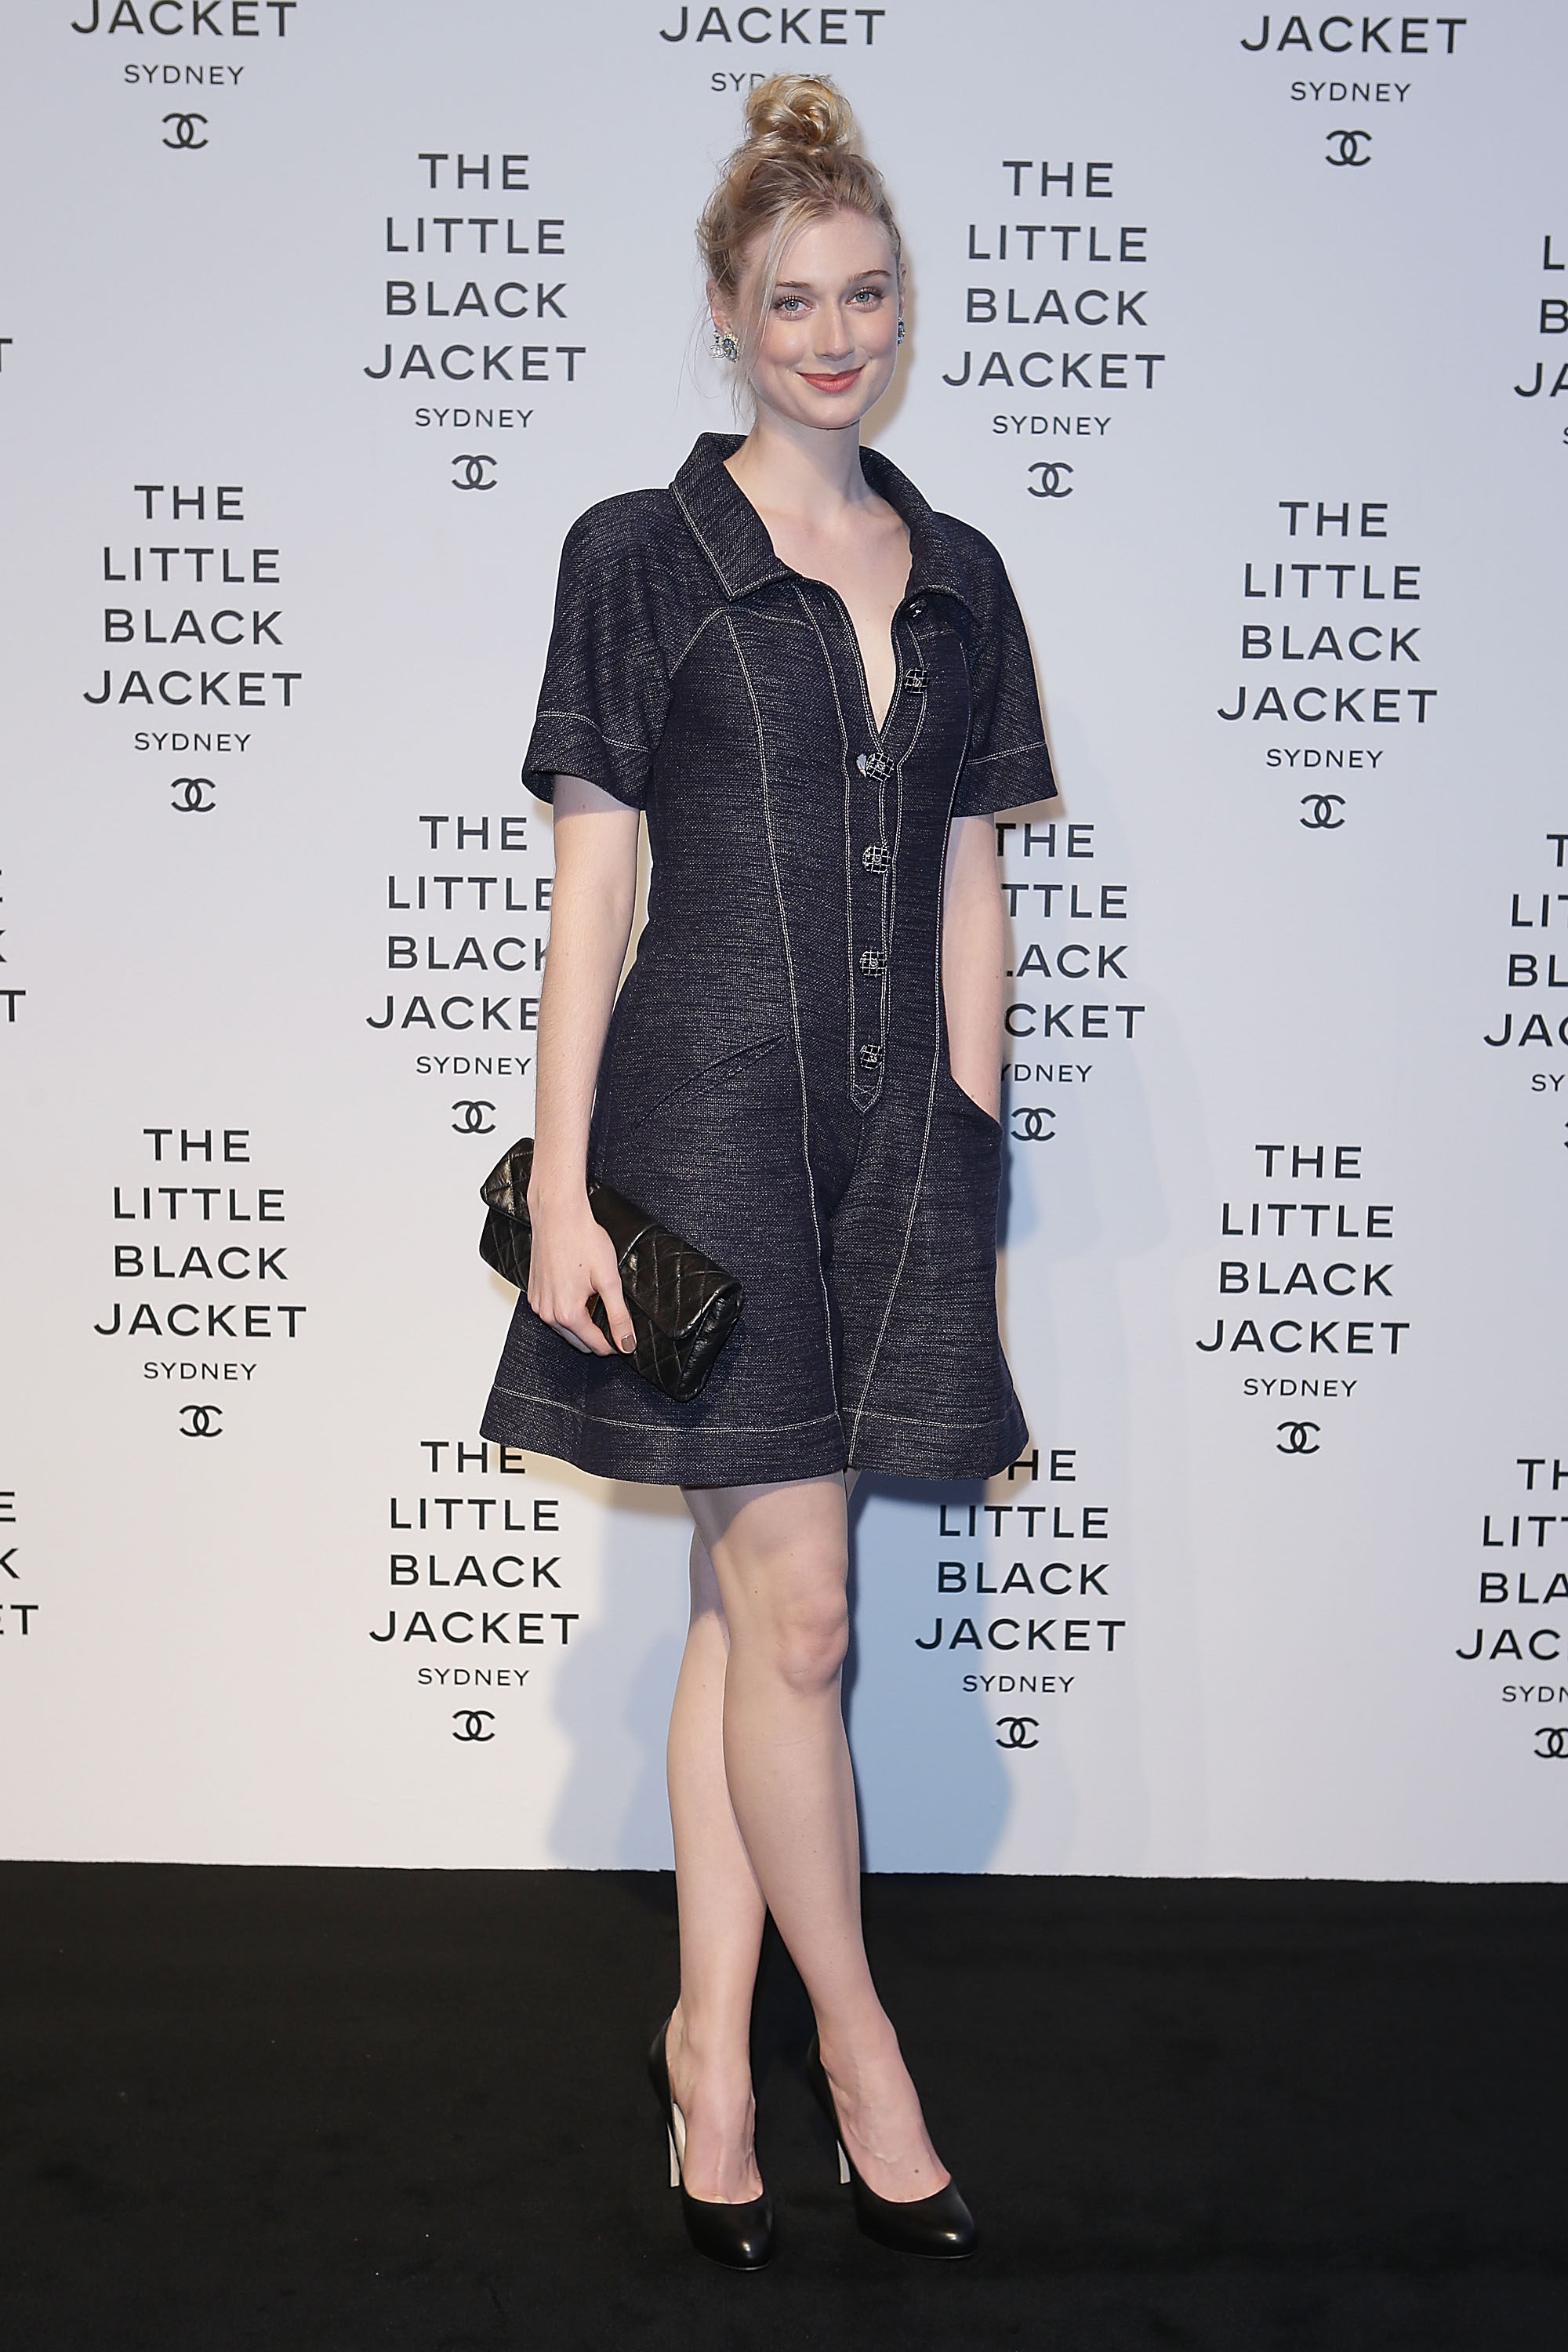 SYDNEY, AUSTRALIA - OCTOBER 25: Elizabeth Debicki attends the 'Chanel The Little Black Jacket' exhibition launch on October 25, 2012 in Sydney, Australia. The photographic exhibition is open to the public October 27 - November 11. (Photo by Brendon Thorne/Getty Images for Chanel)